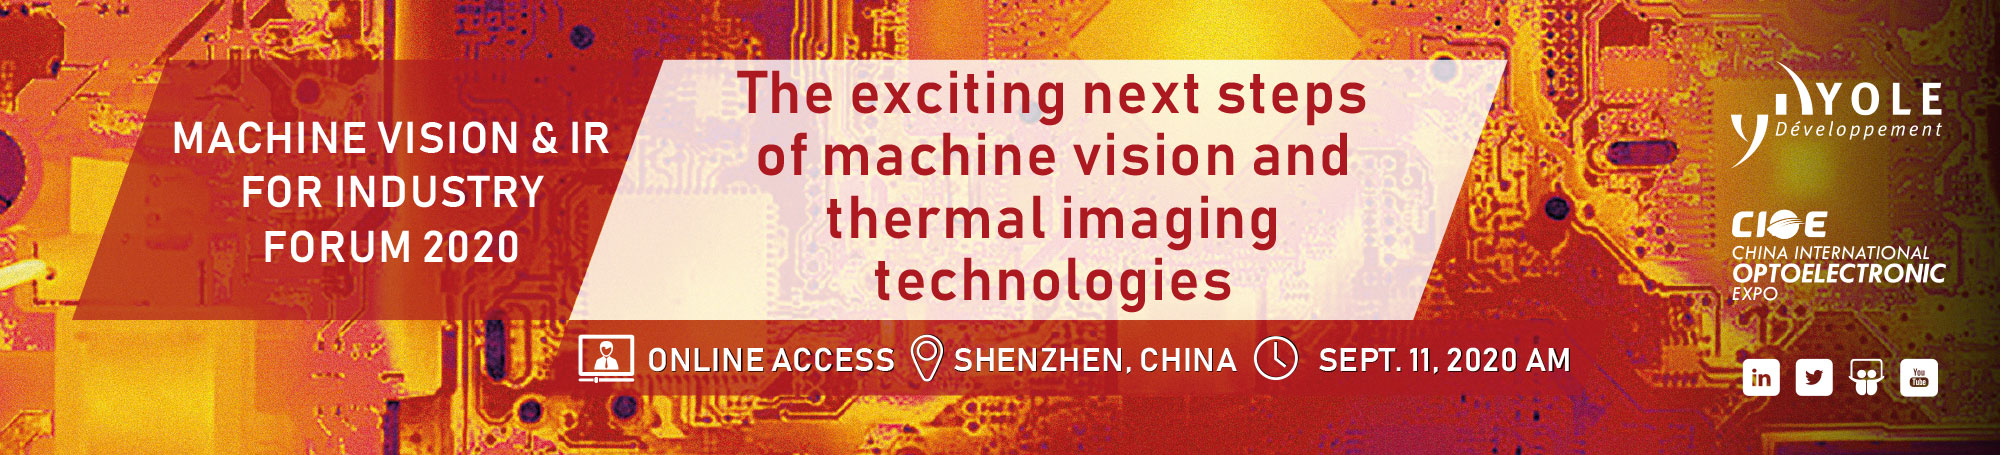 Machine Vision & IR for Industry Forum 2020